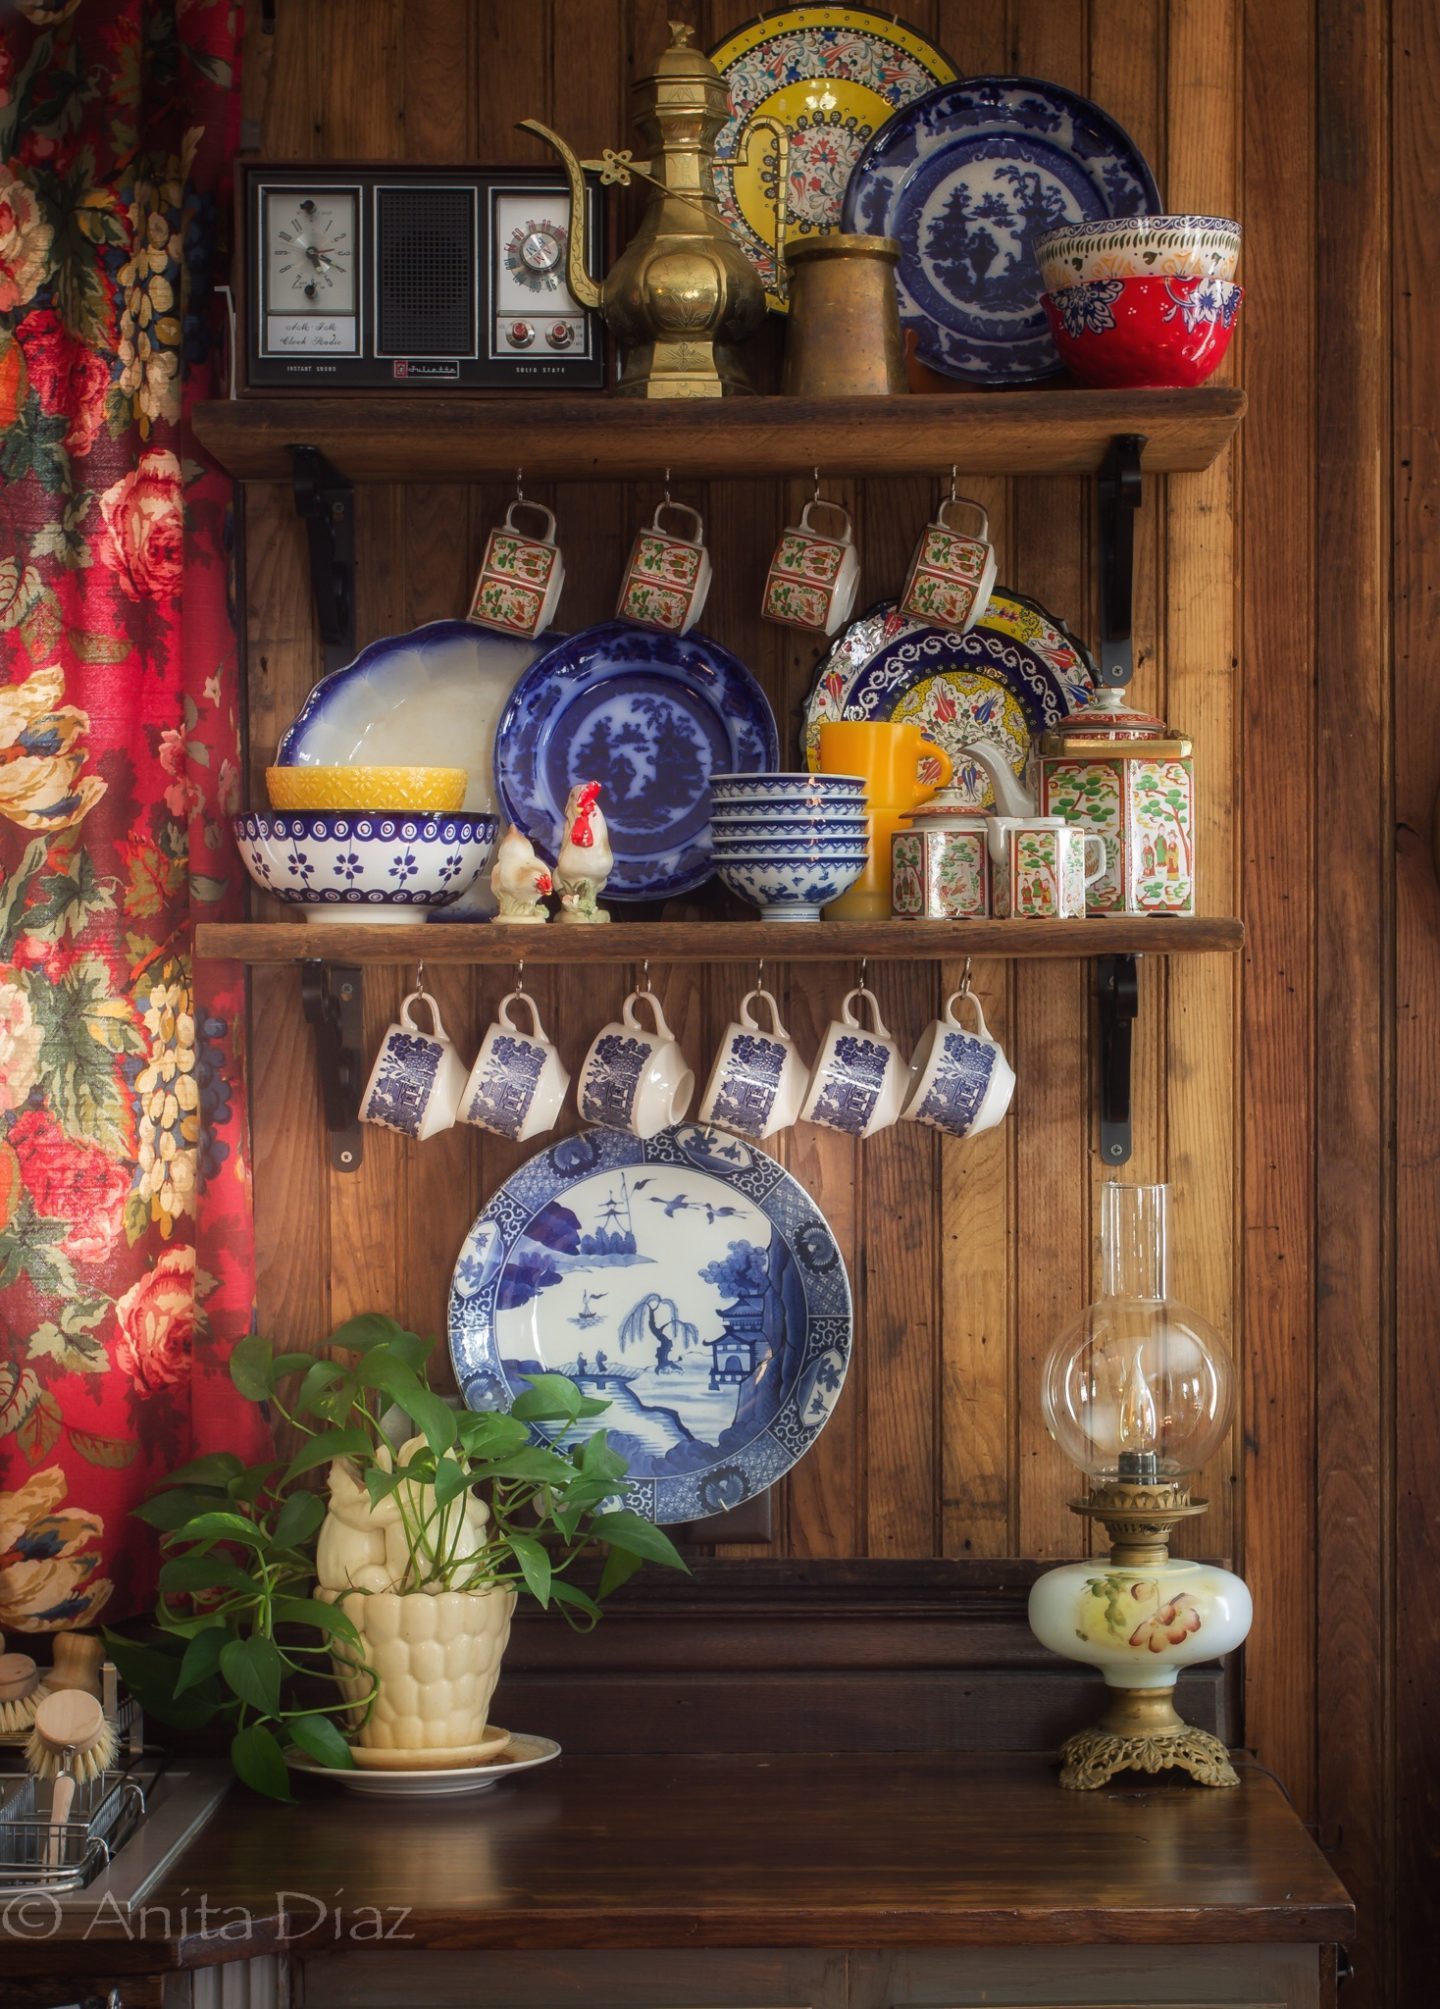 Shelf styling: Mixing old and new